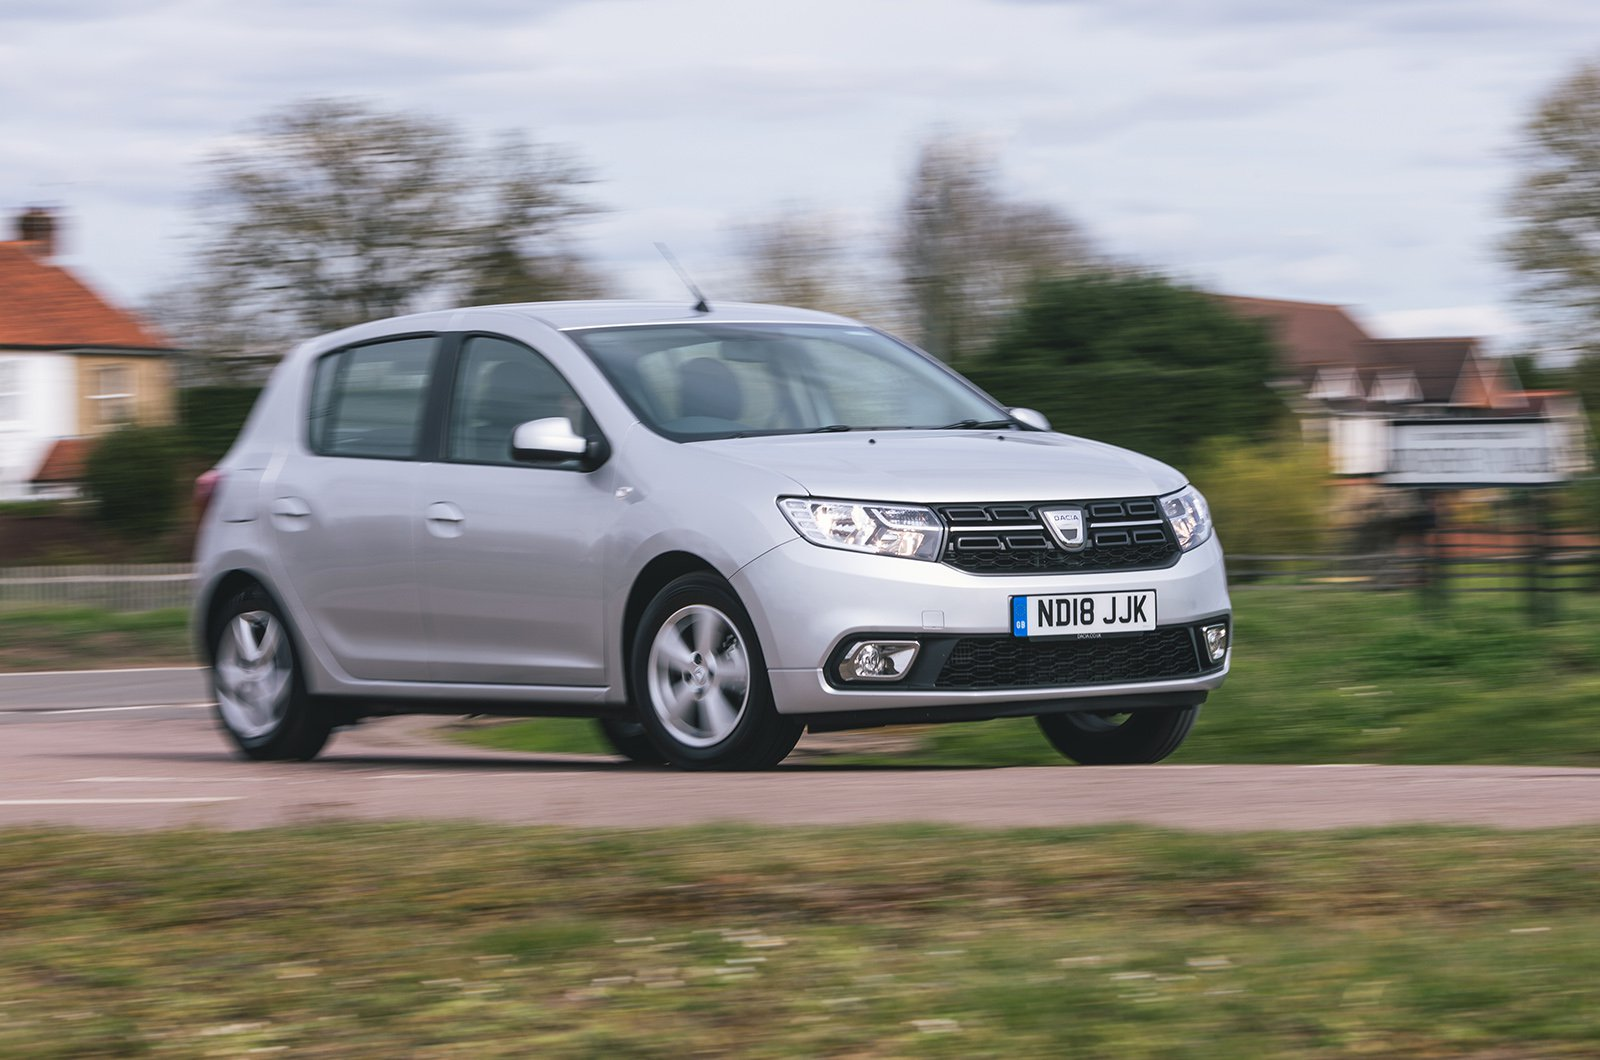 Dacia Sandero front three quarters